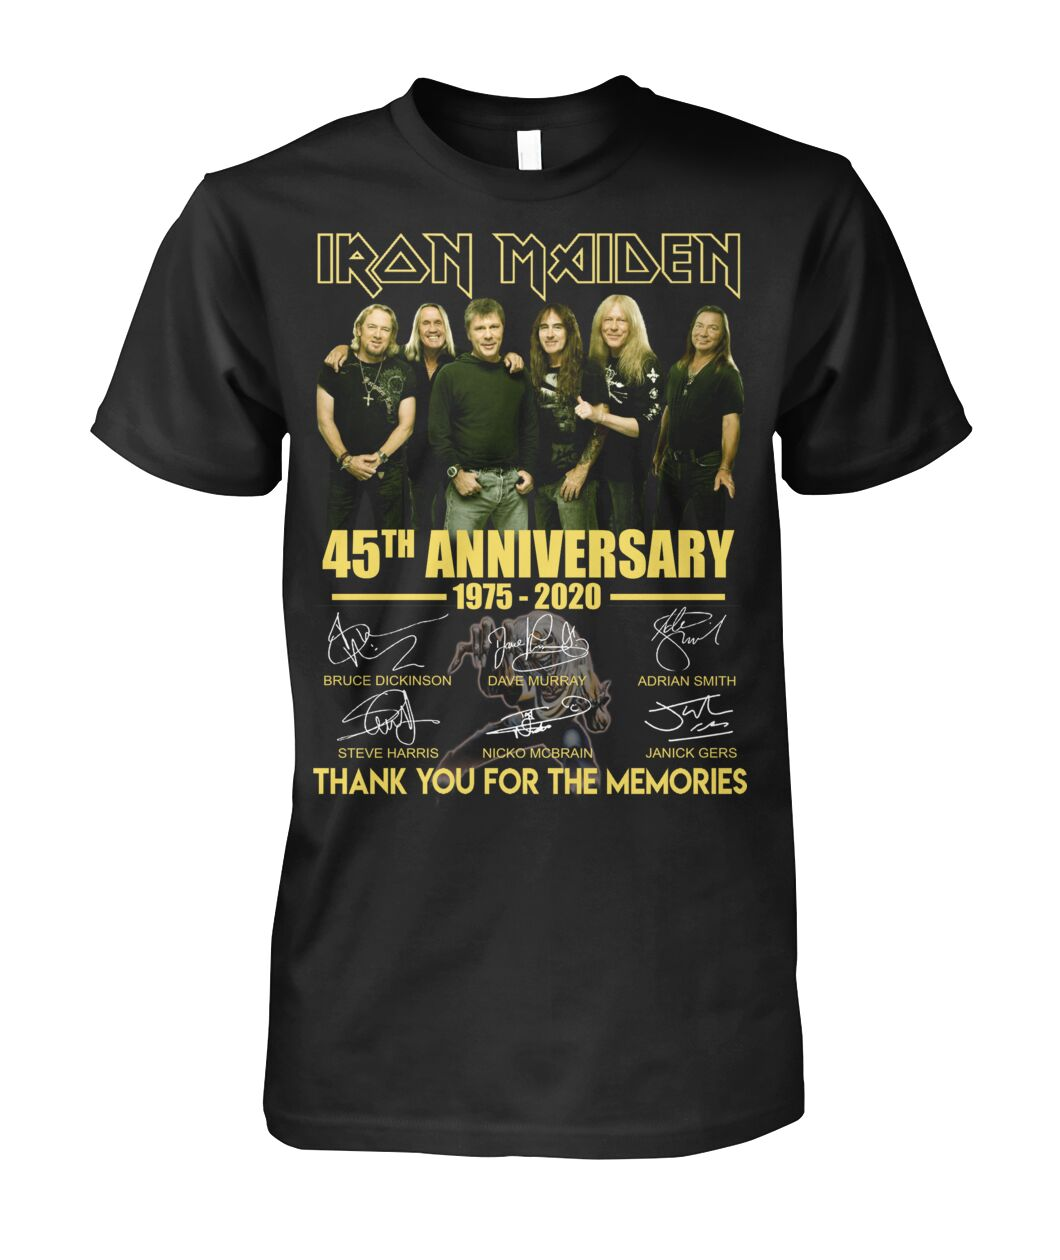 Iron maiden 45th anniversary thank you for the memories shirt